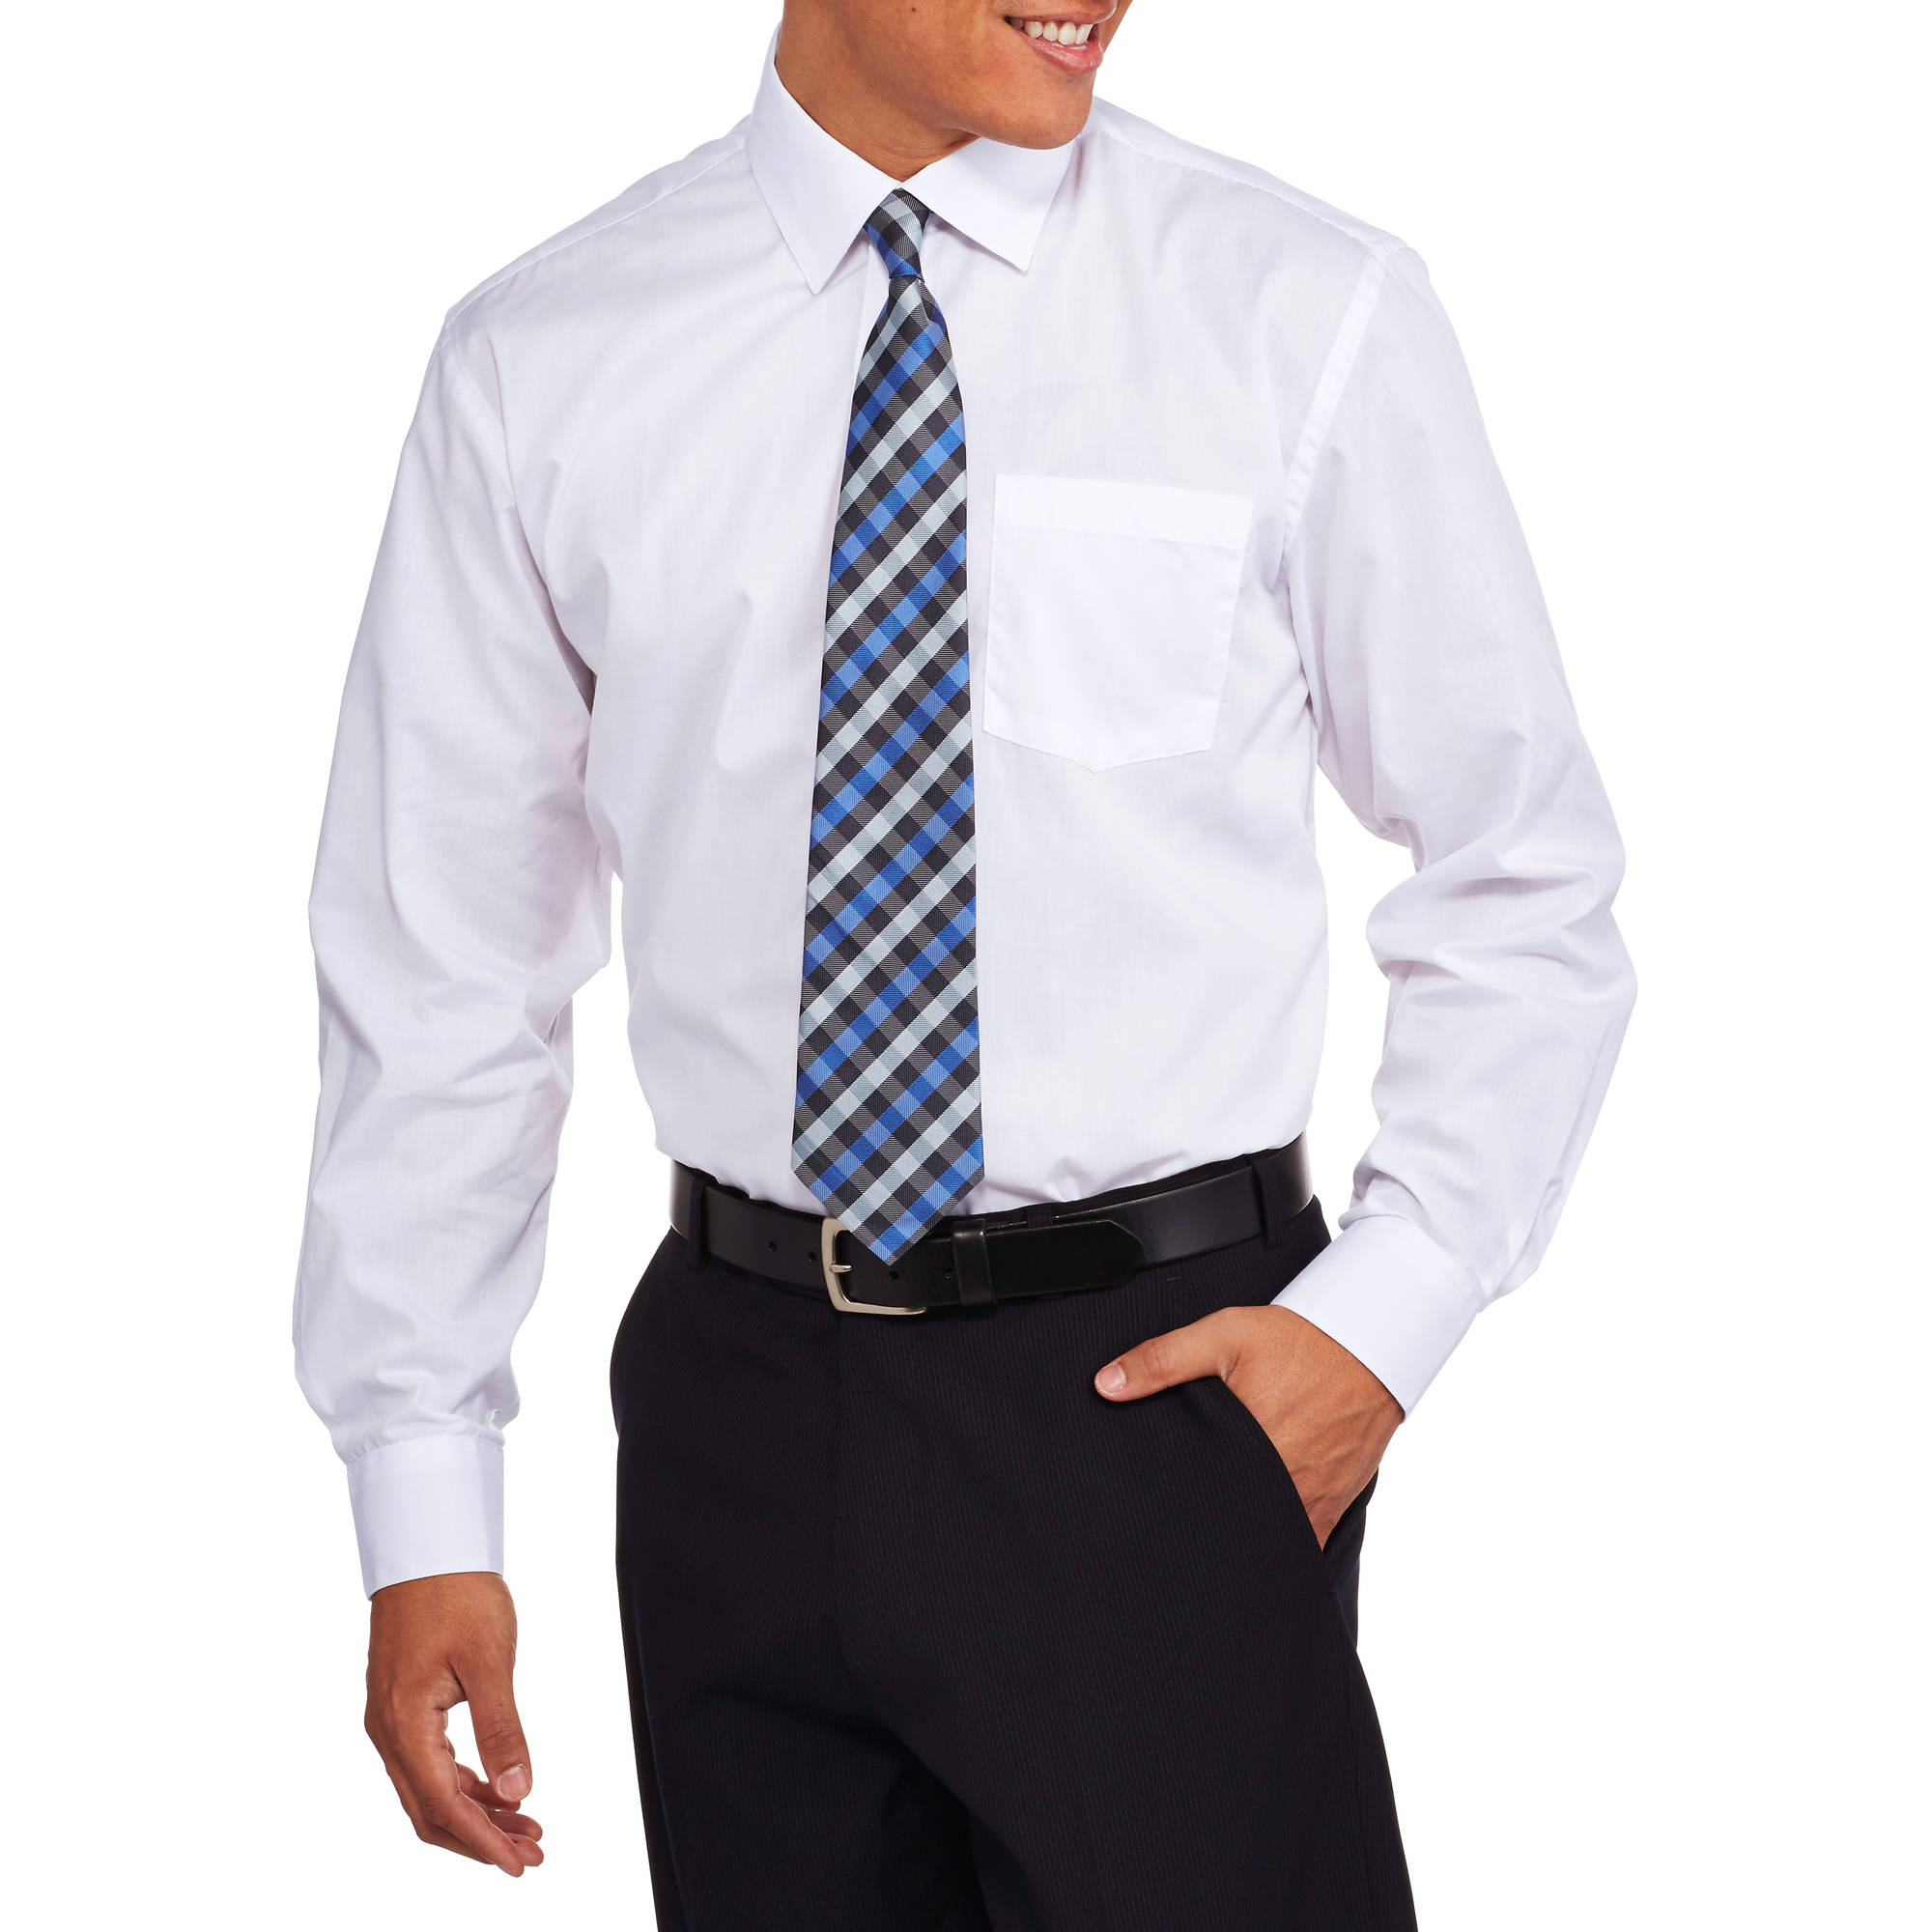 s packaged dress shirt tie set walmart